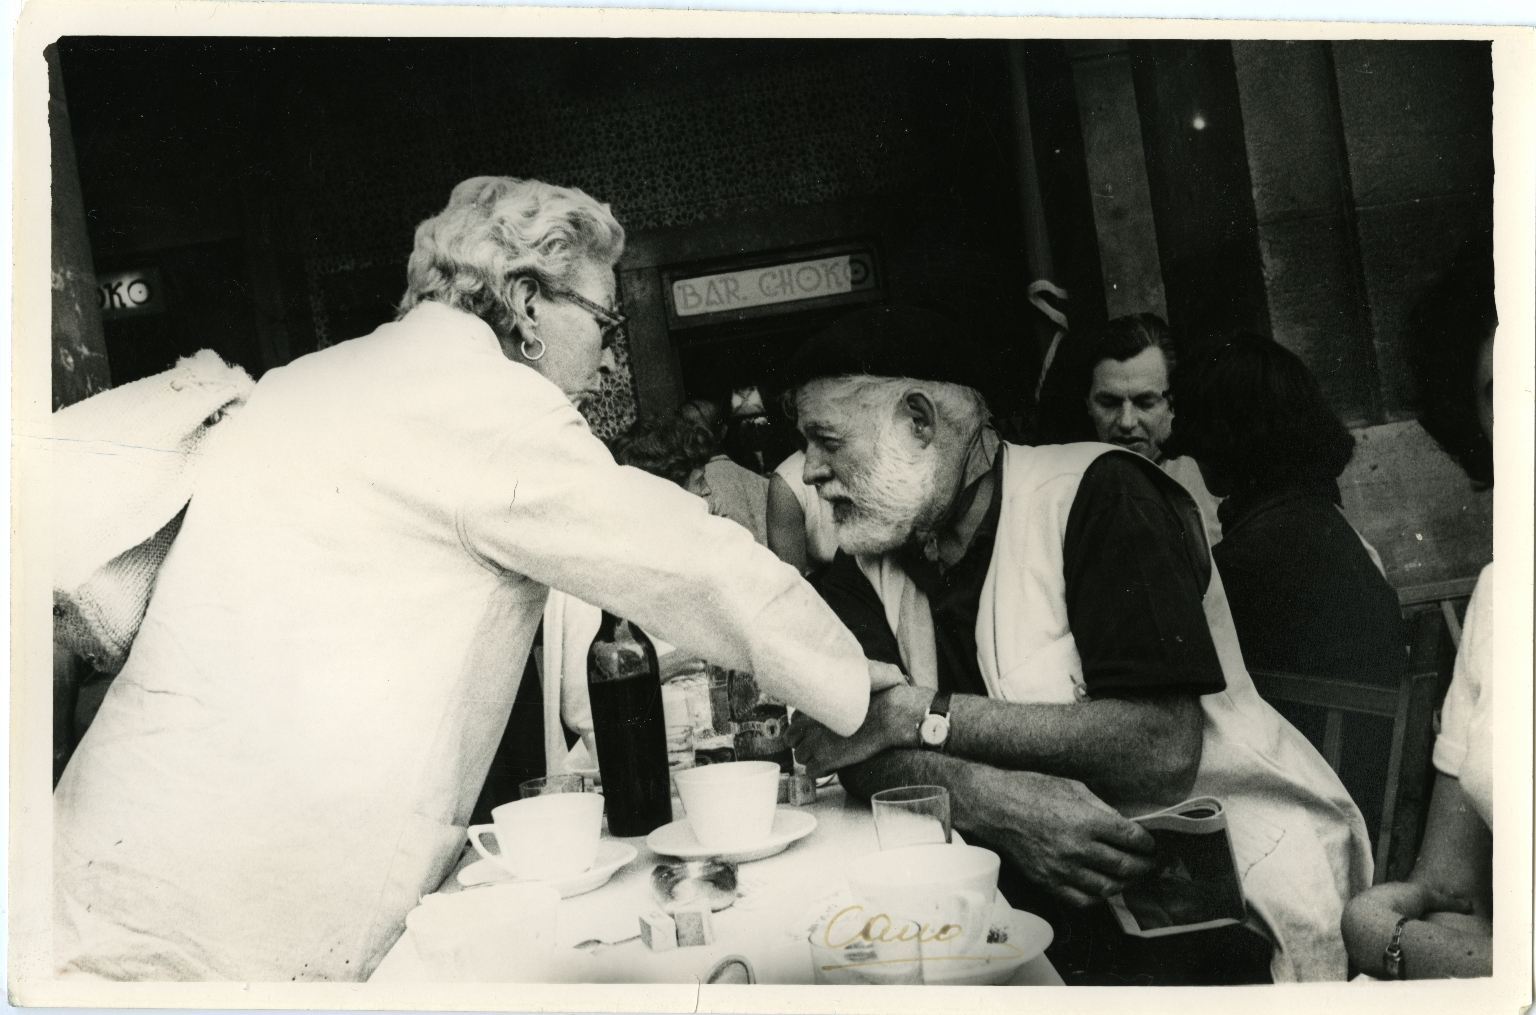 Hemingway Seated at Spanish Restaurant, Holding Hands with Woman